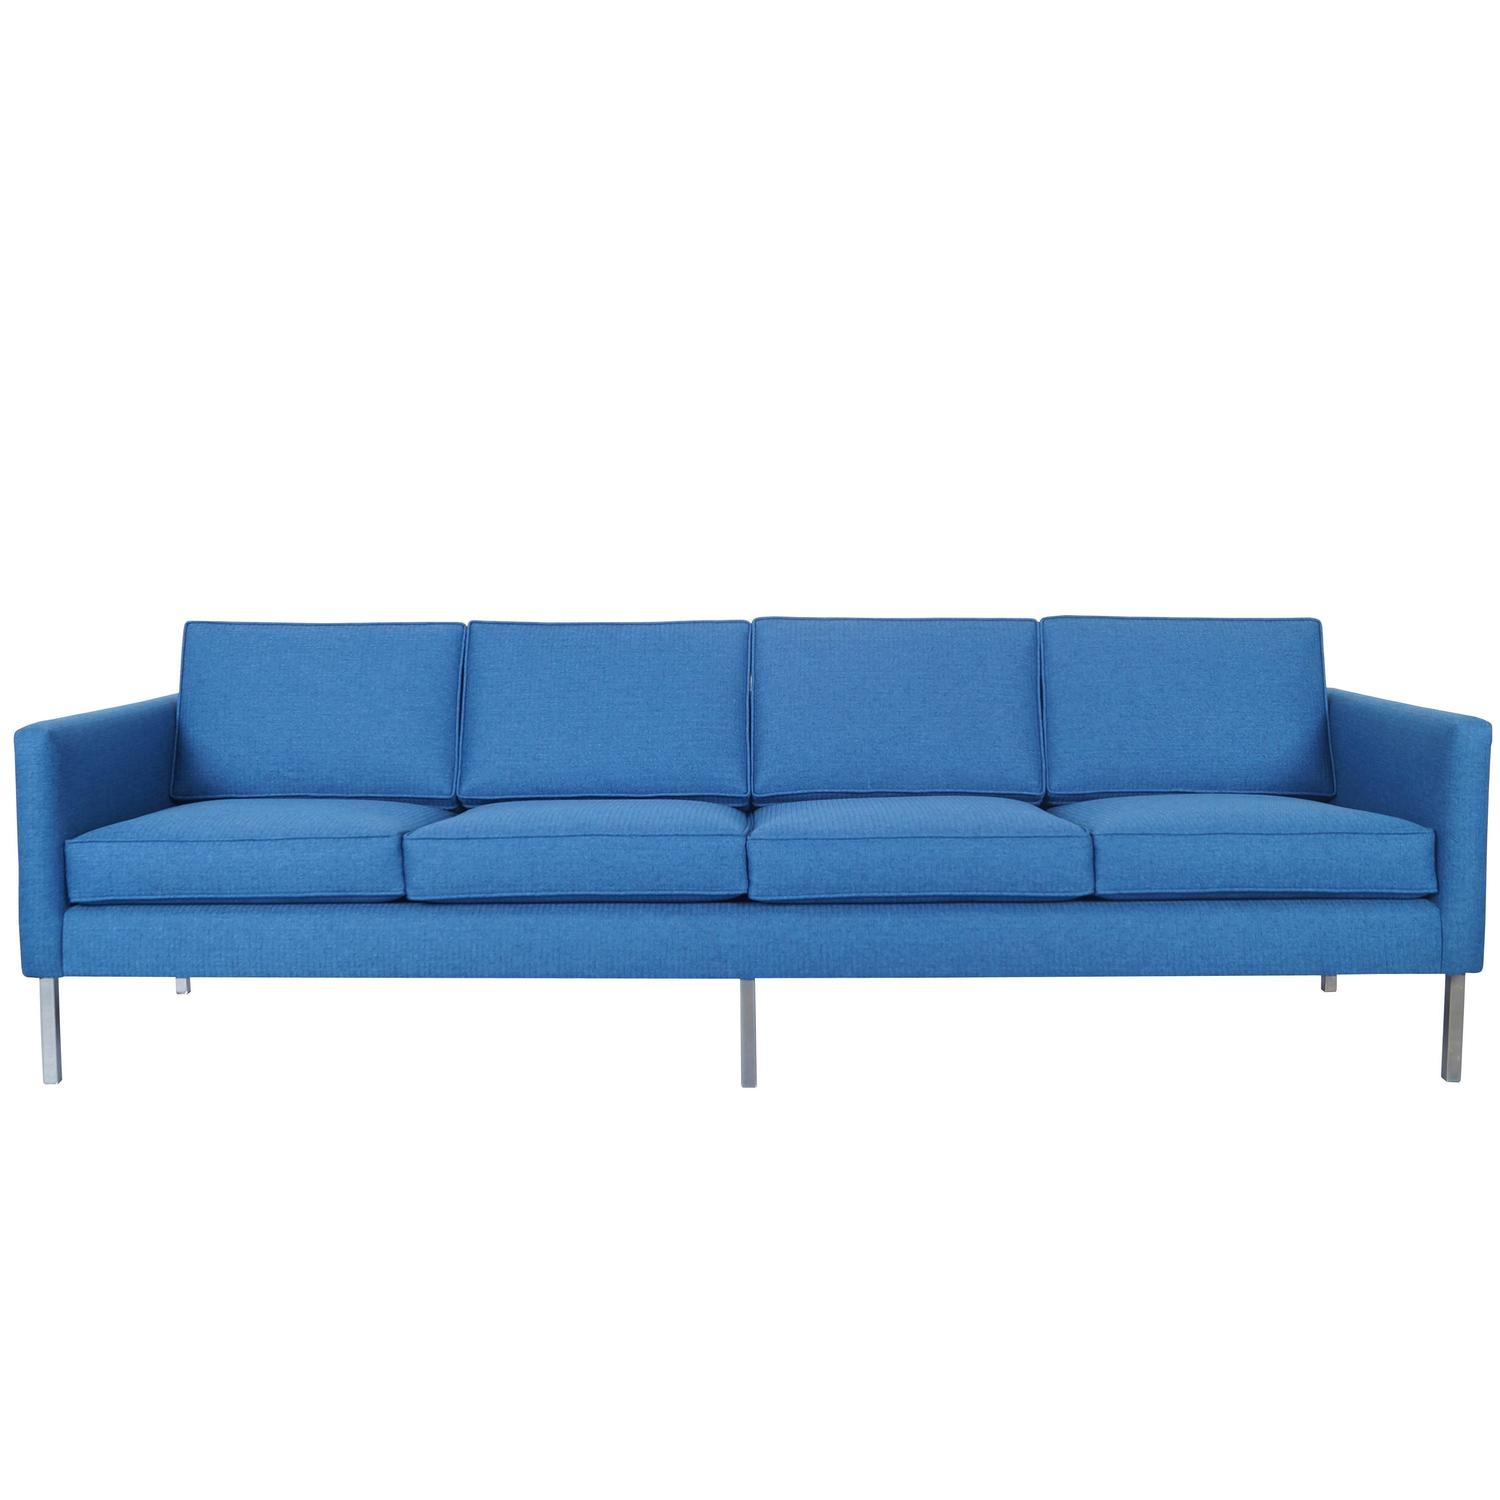 Mid century modern loveseat crowdbuild for for Modern love seats